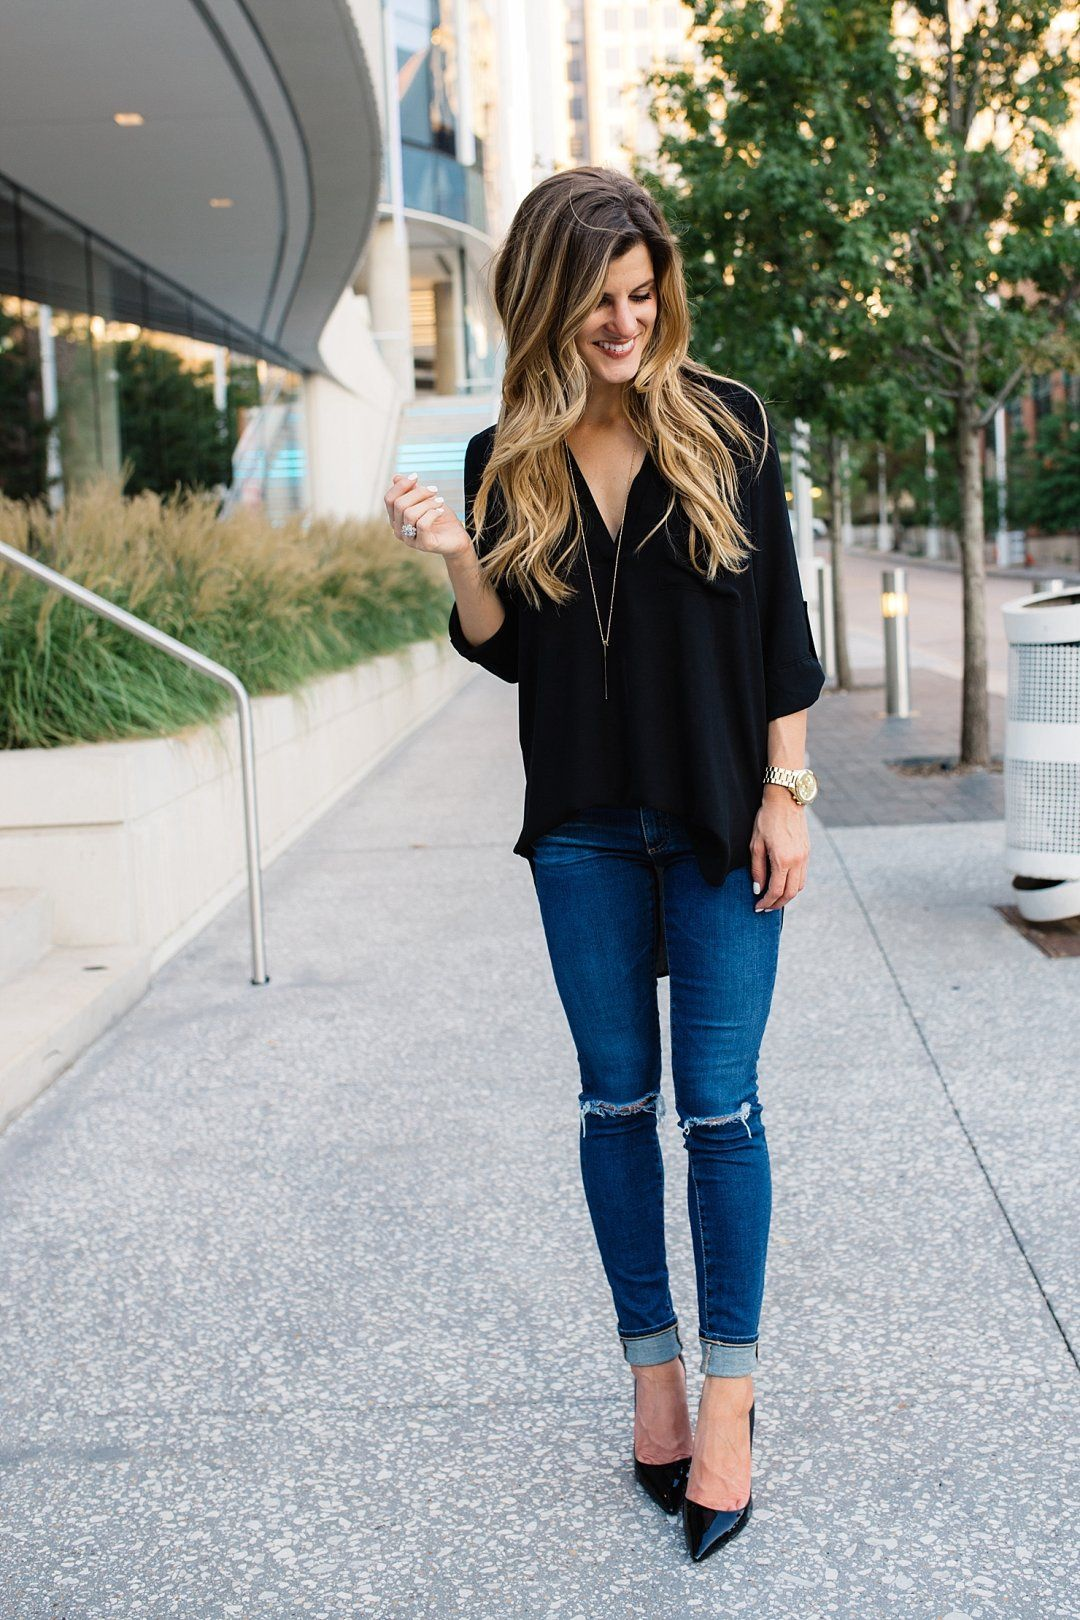 What to wear to a casual dinner